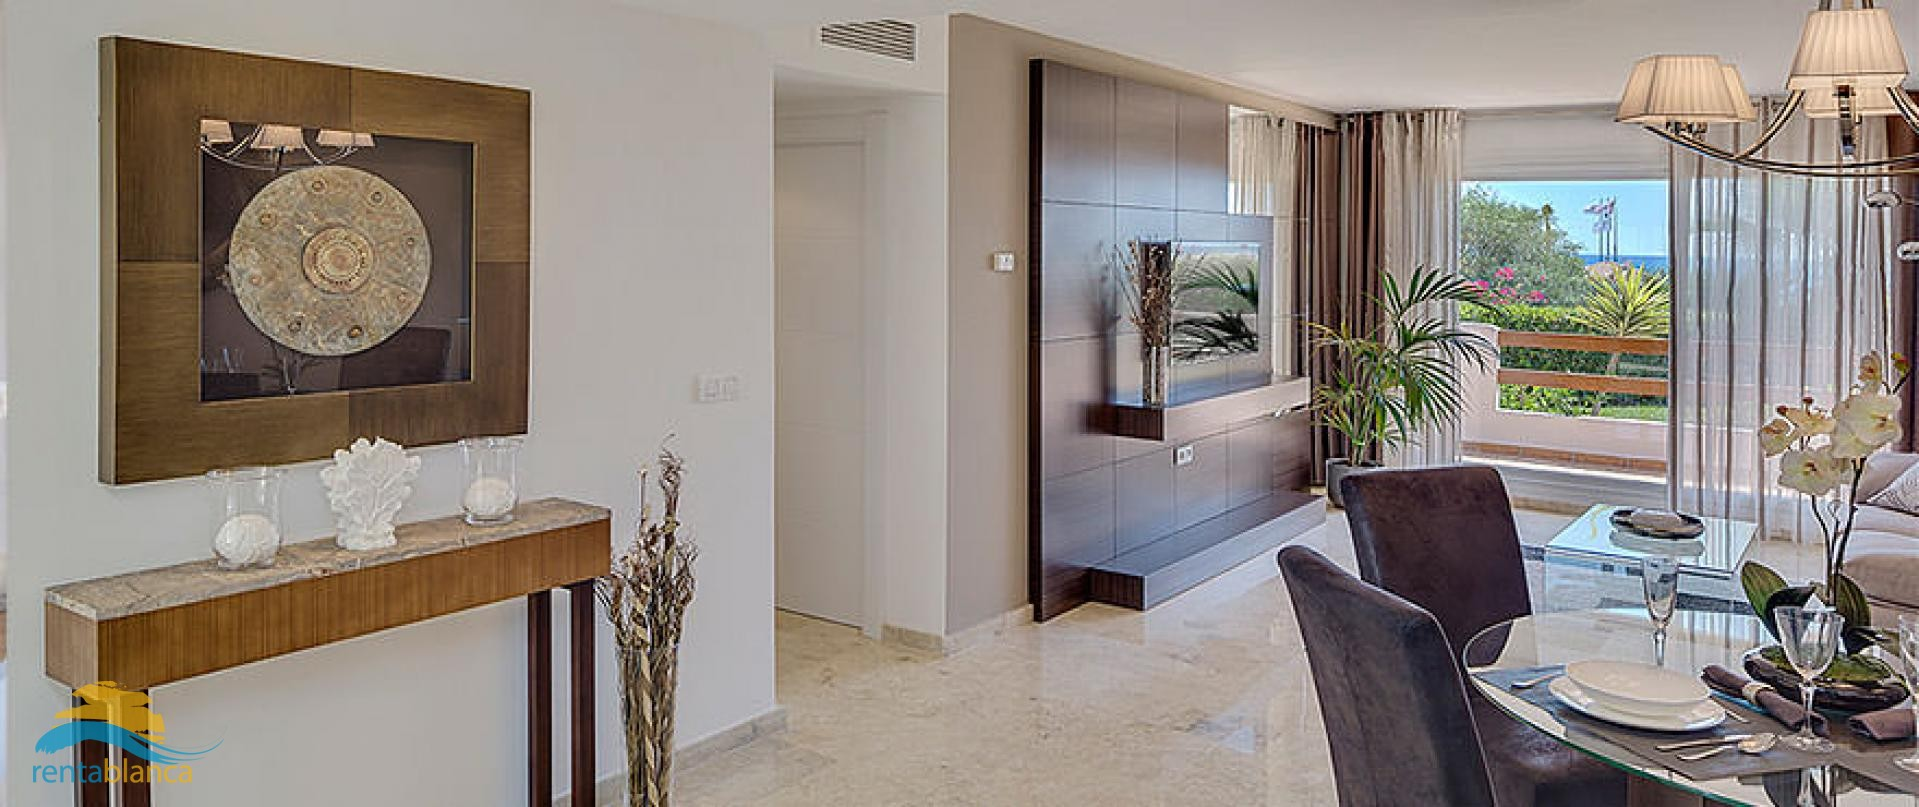 New build - beach apartment - La Recoleta  - Rentablanca